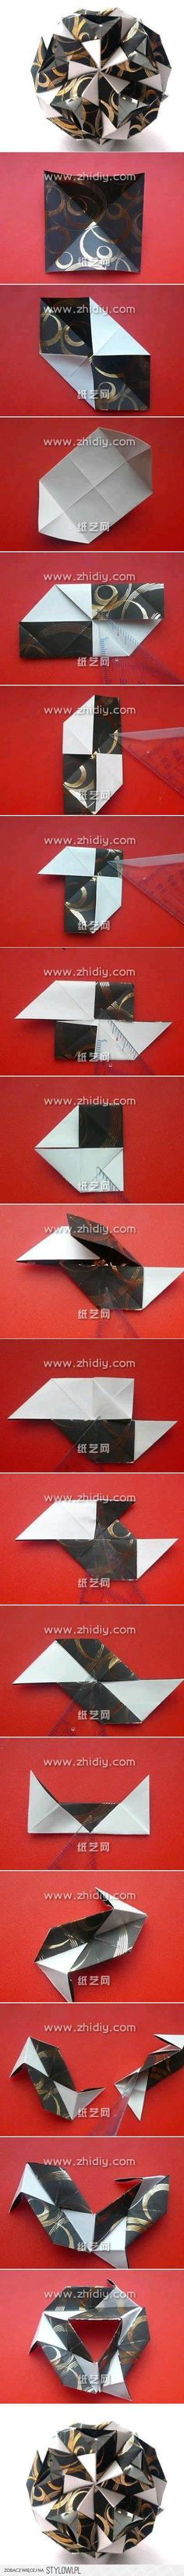 Kusudama Origami Folding Instructions Lantern | Origami ... The Stylowi.pl